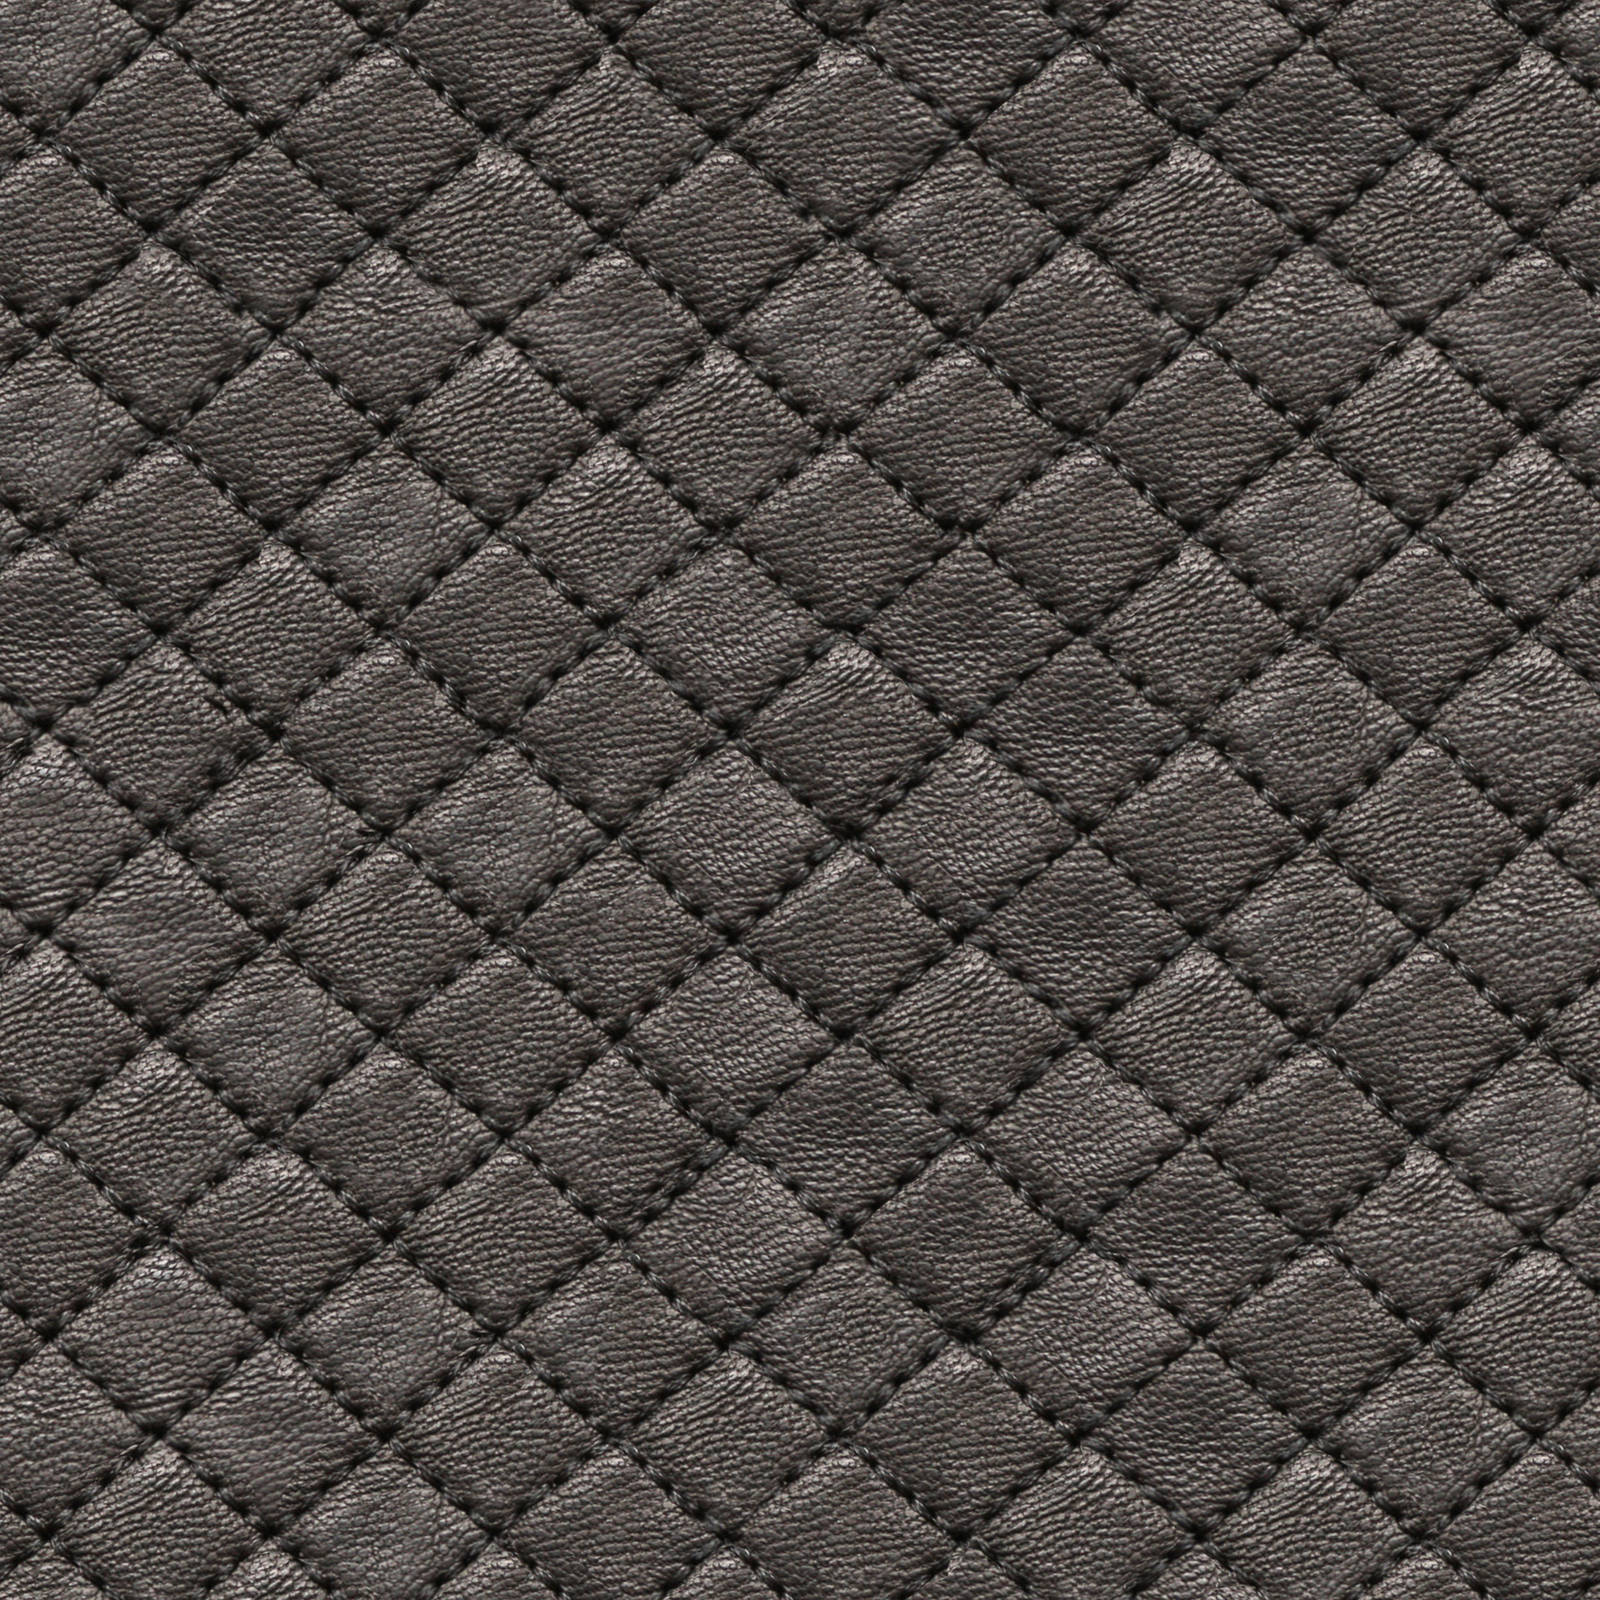 High Resolution Seamless Leather Texture by environment-textures